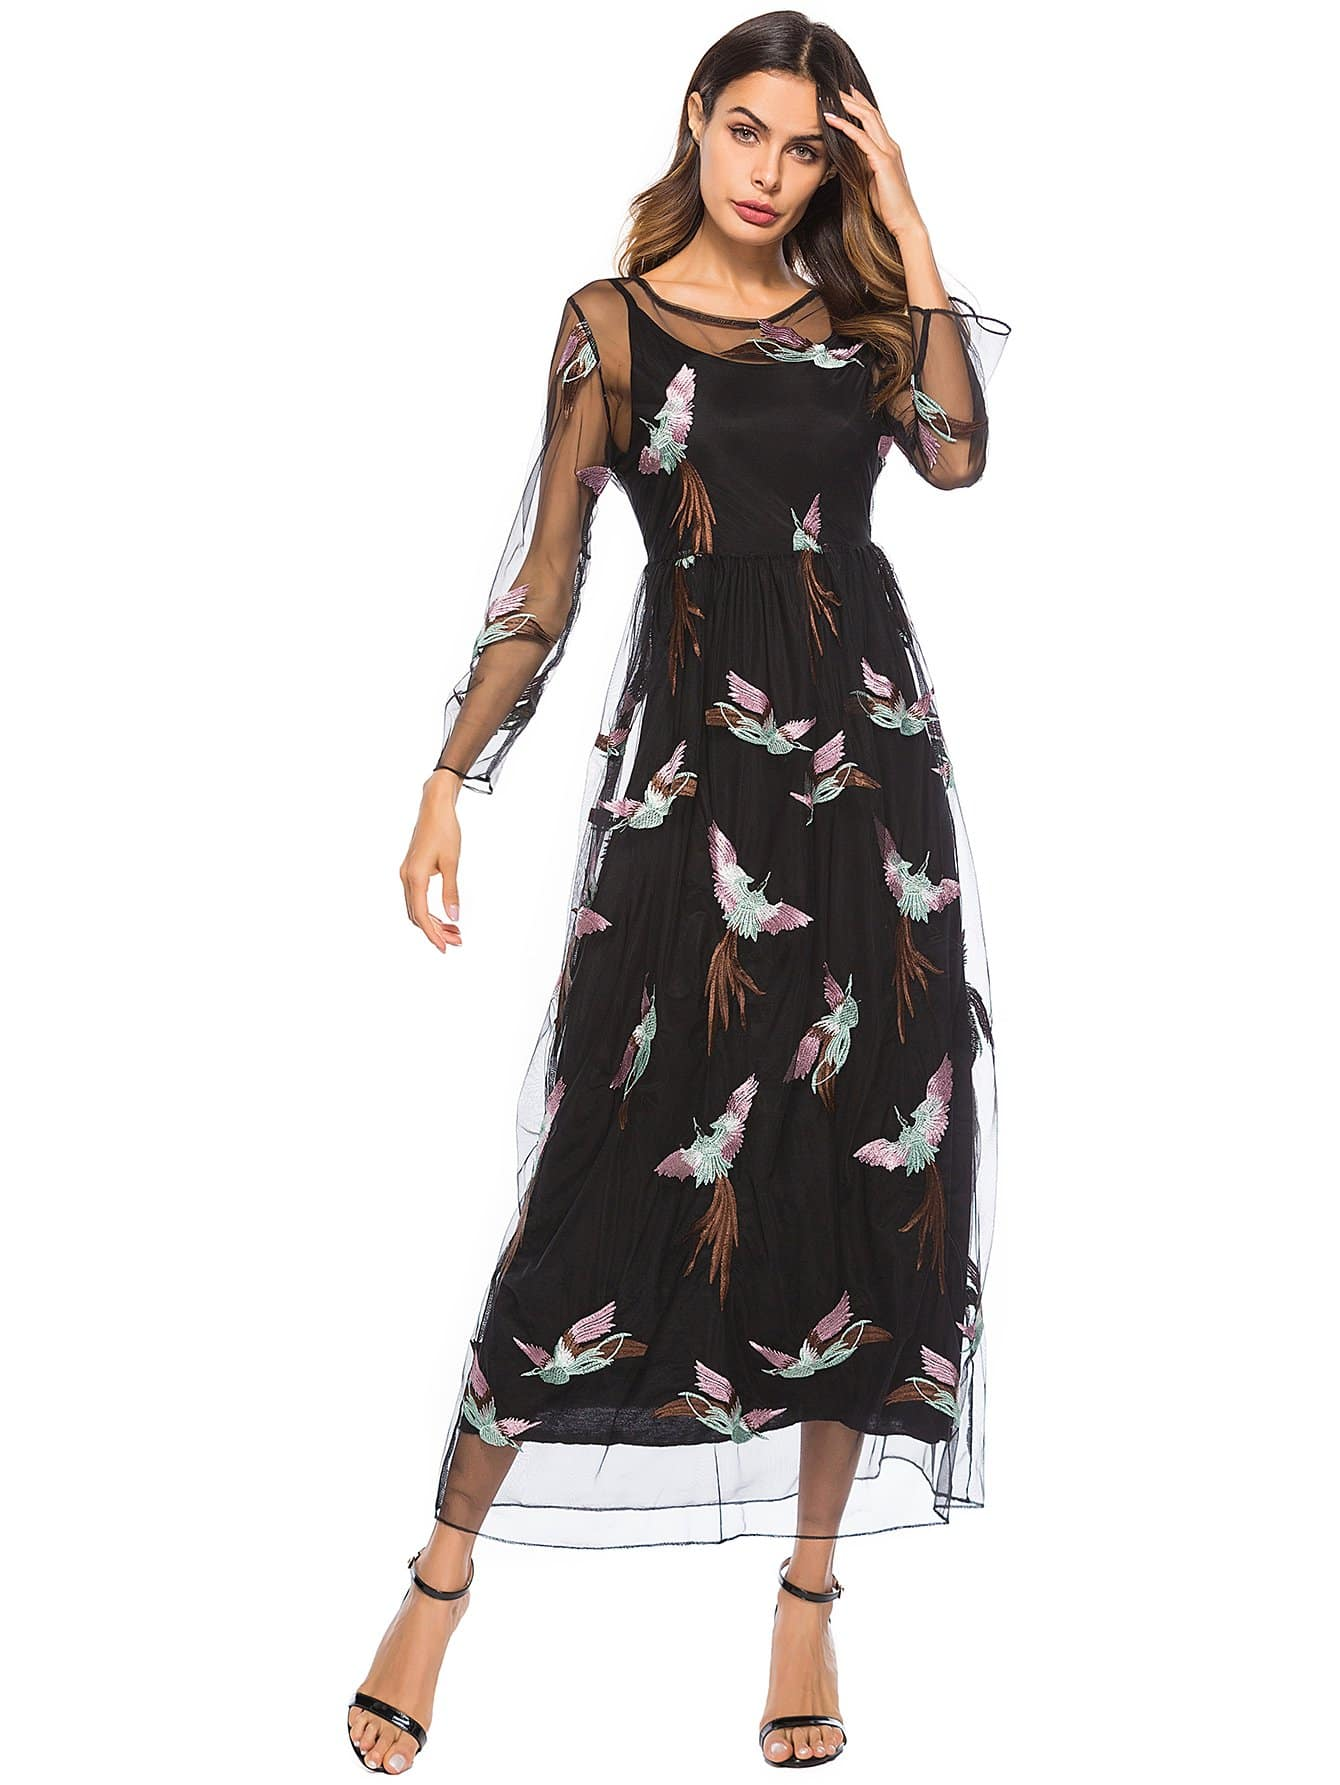 Sheer Mesh Animal Embroidered Dress embroidered mesh sheer dress without lingerie dress